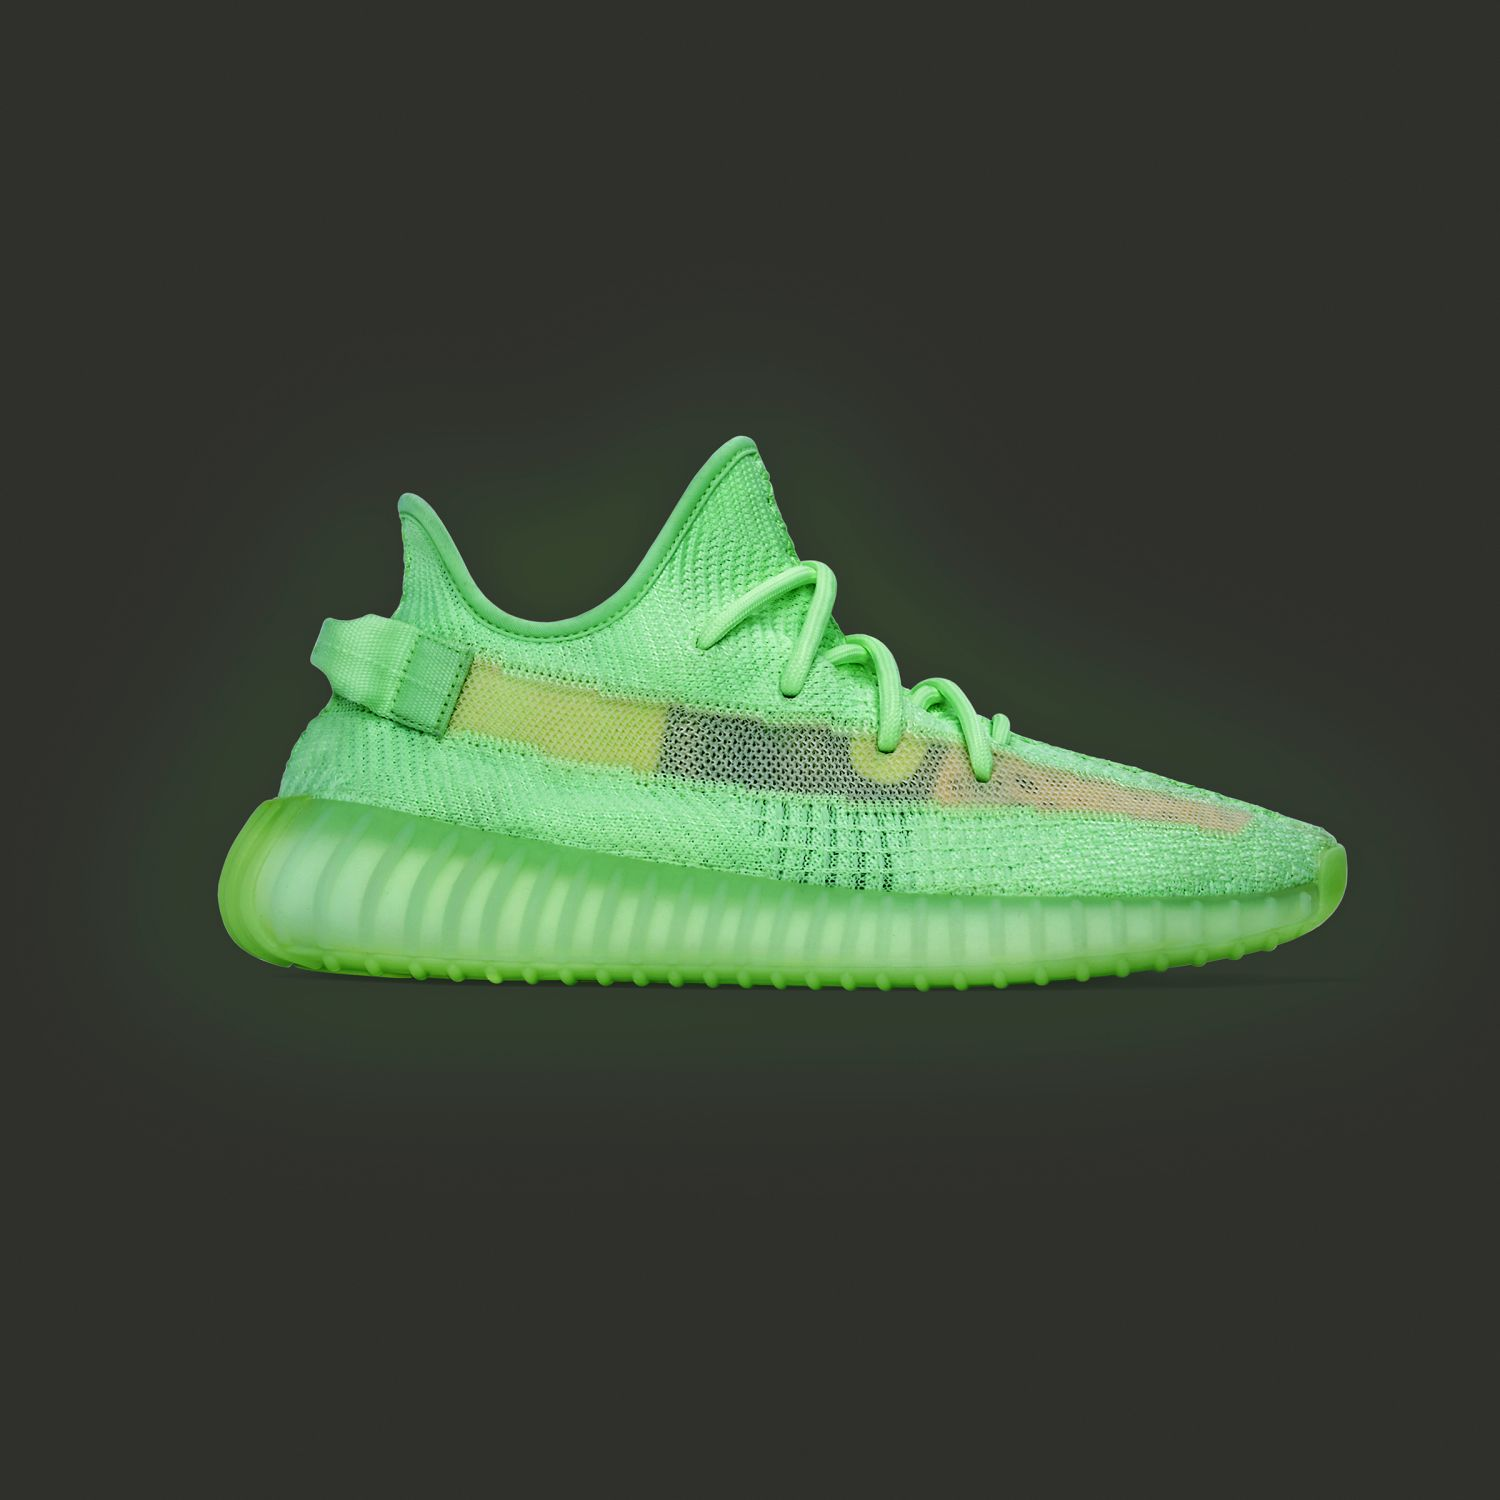 adidas-yeezy-boost-350-v2-glow-in-the-dark-release-20190525